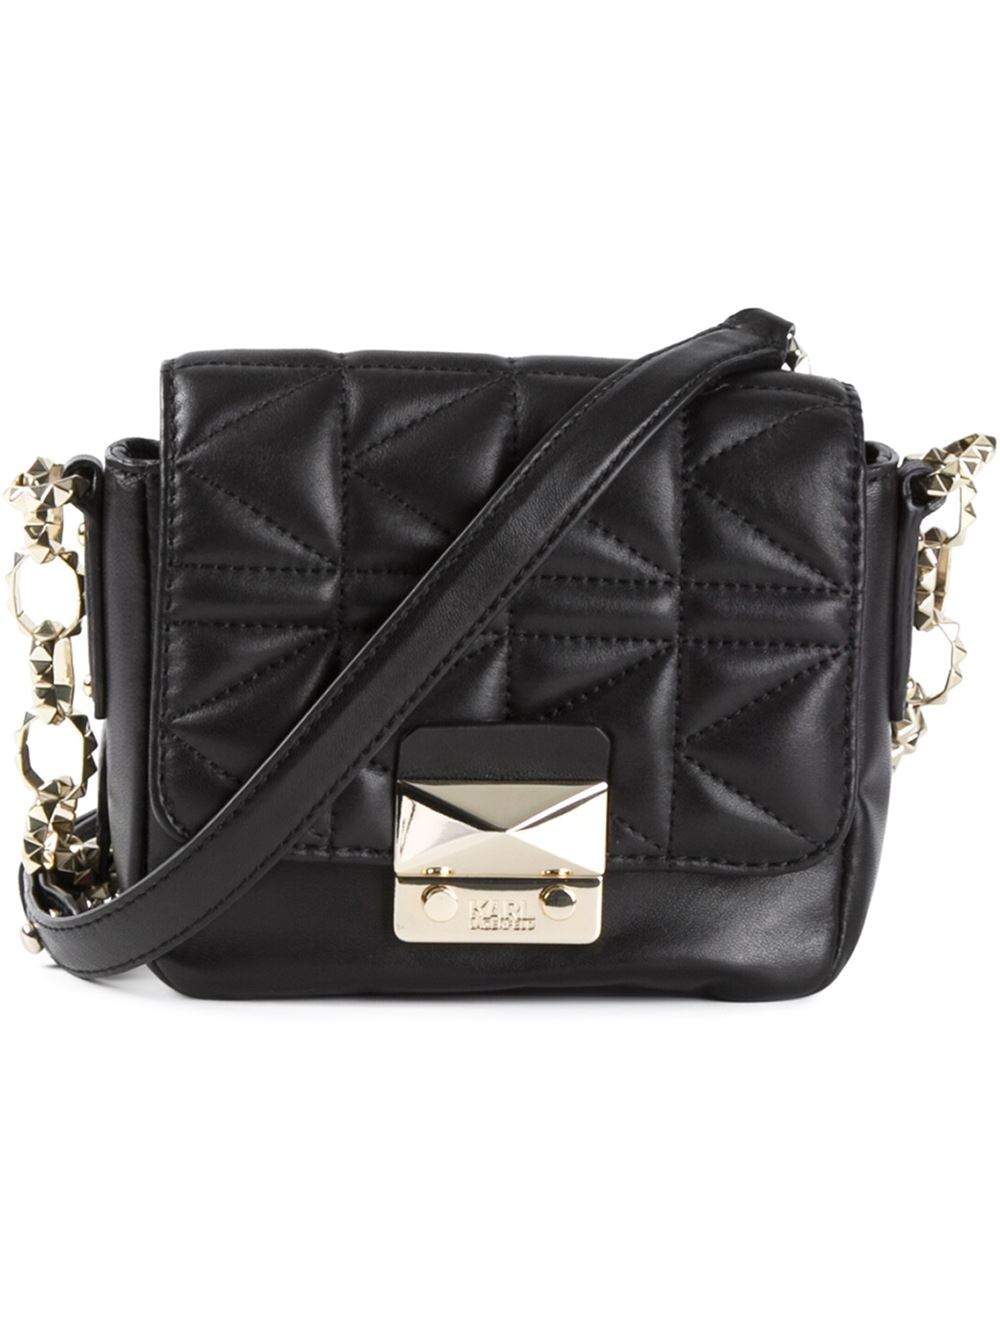 6f3deff8a8 Karl Lagerfeld Quilted Cross Body Bag in Black - Lyst